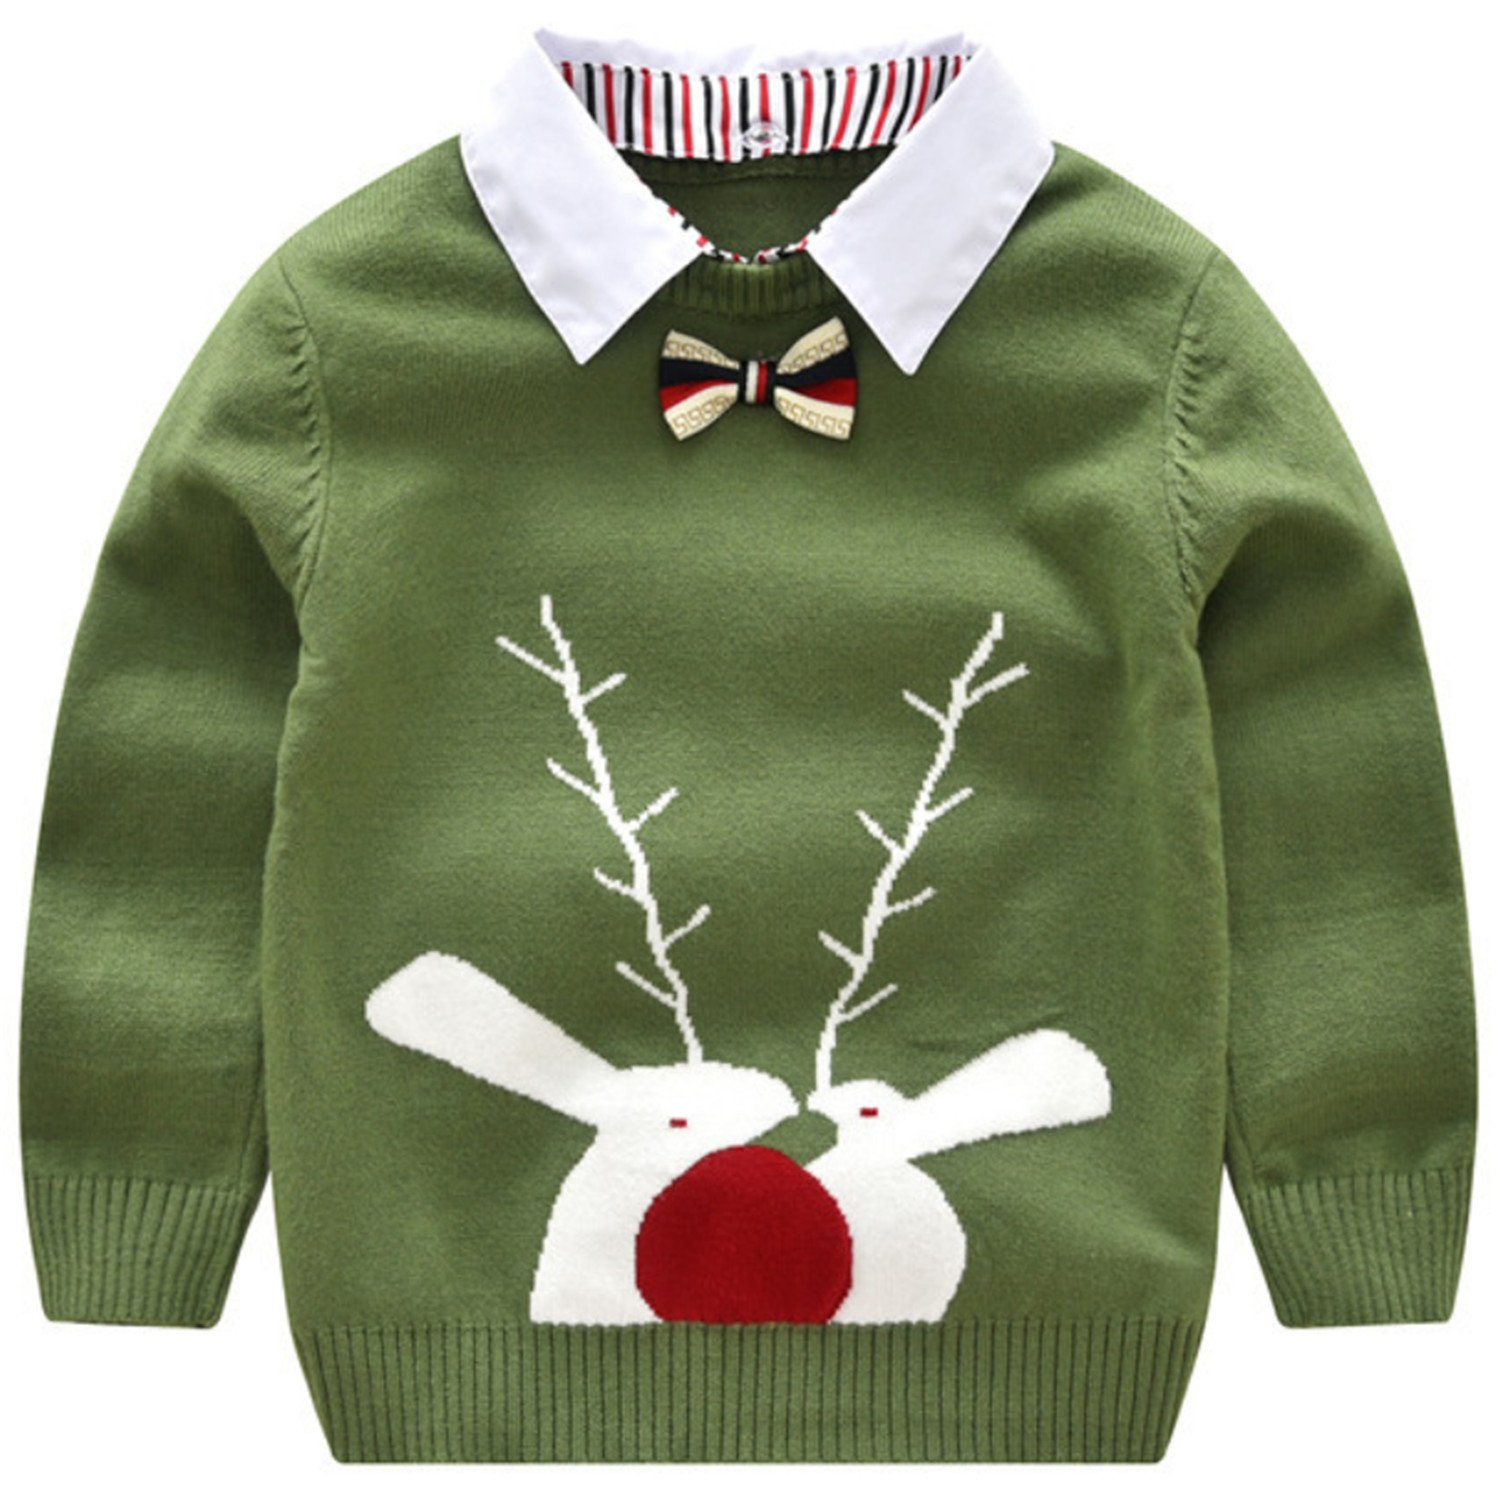 AUIE SAOSA The Boys Detachable collar and Fawn Core Spun Yarn Knitted Sweater Green GN130